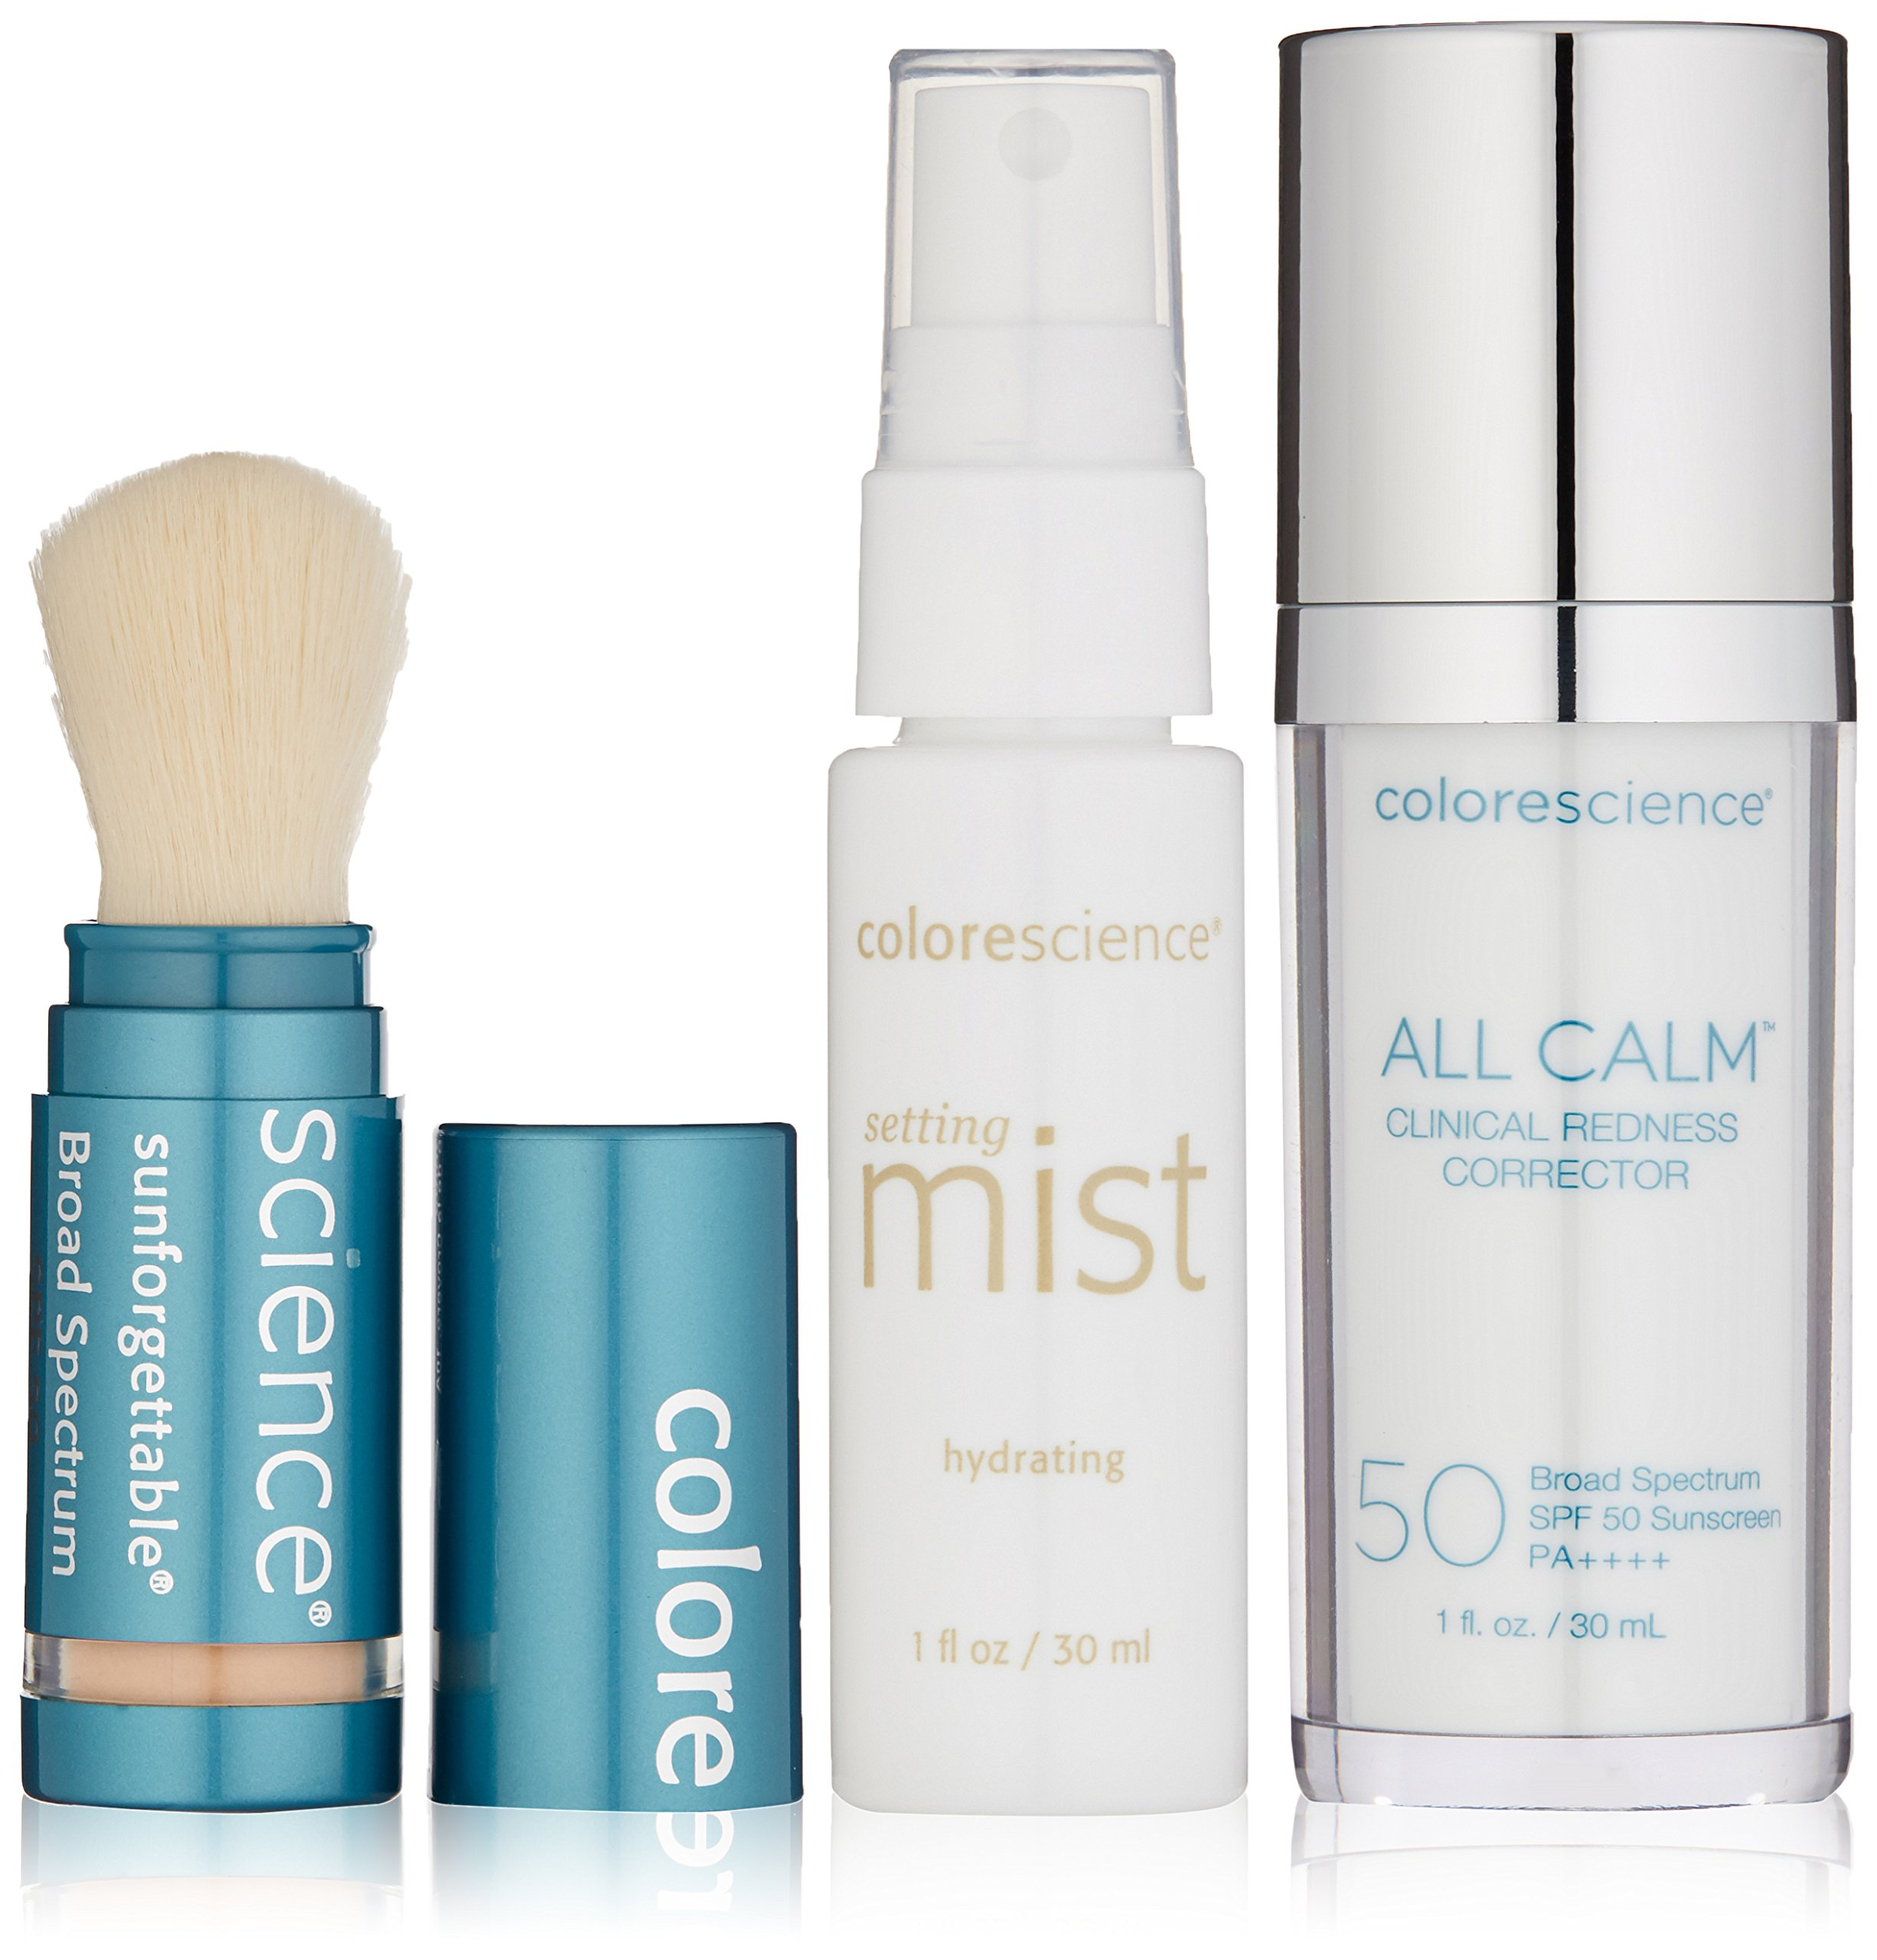 Colorescience All Calm Redness Corrective Kit - Clinical Corrector, Hydrating Setting Mist, & Mineral Sunscreen Brush